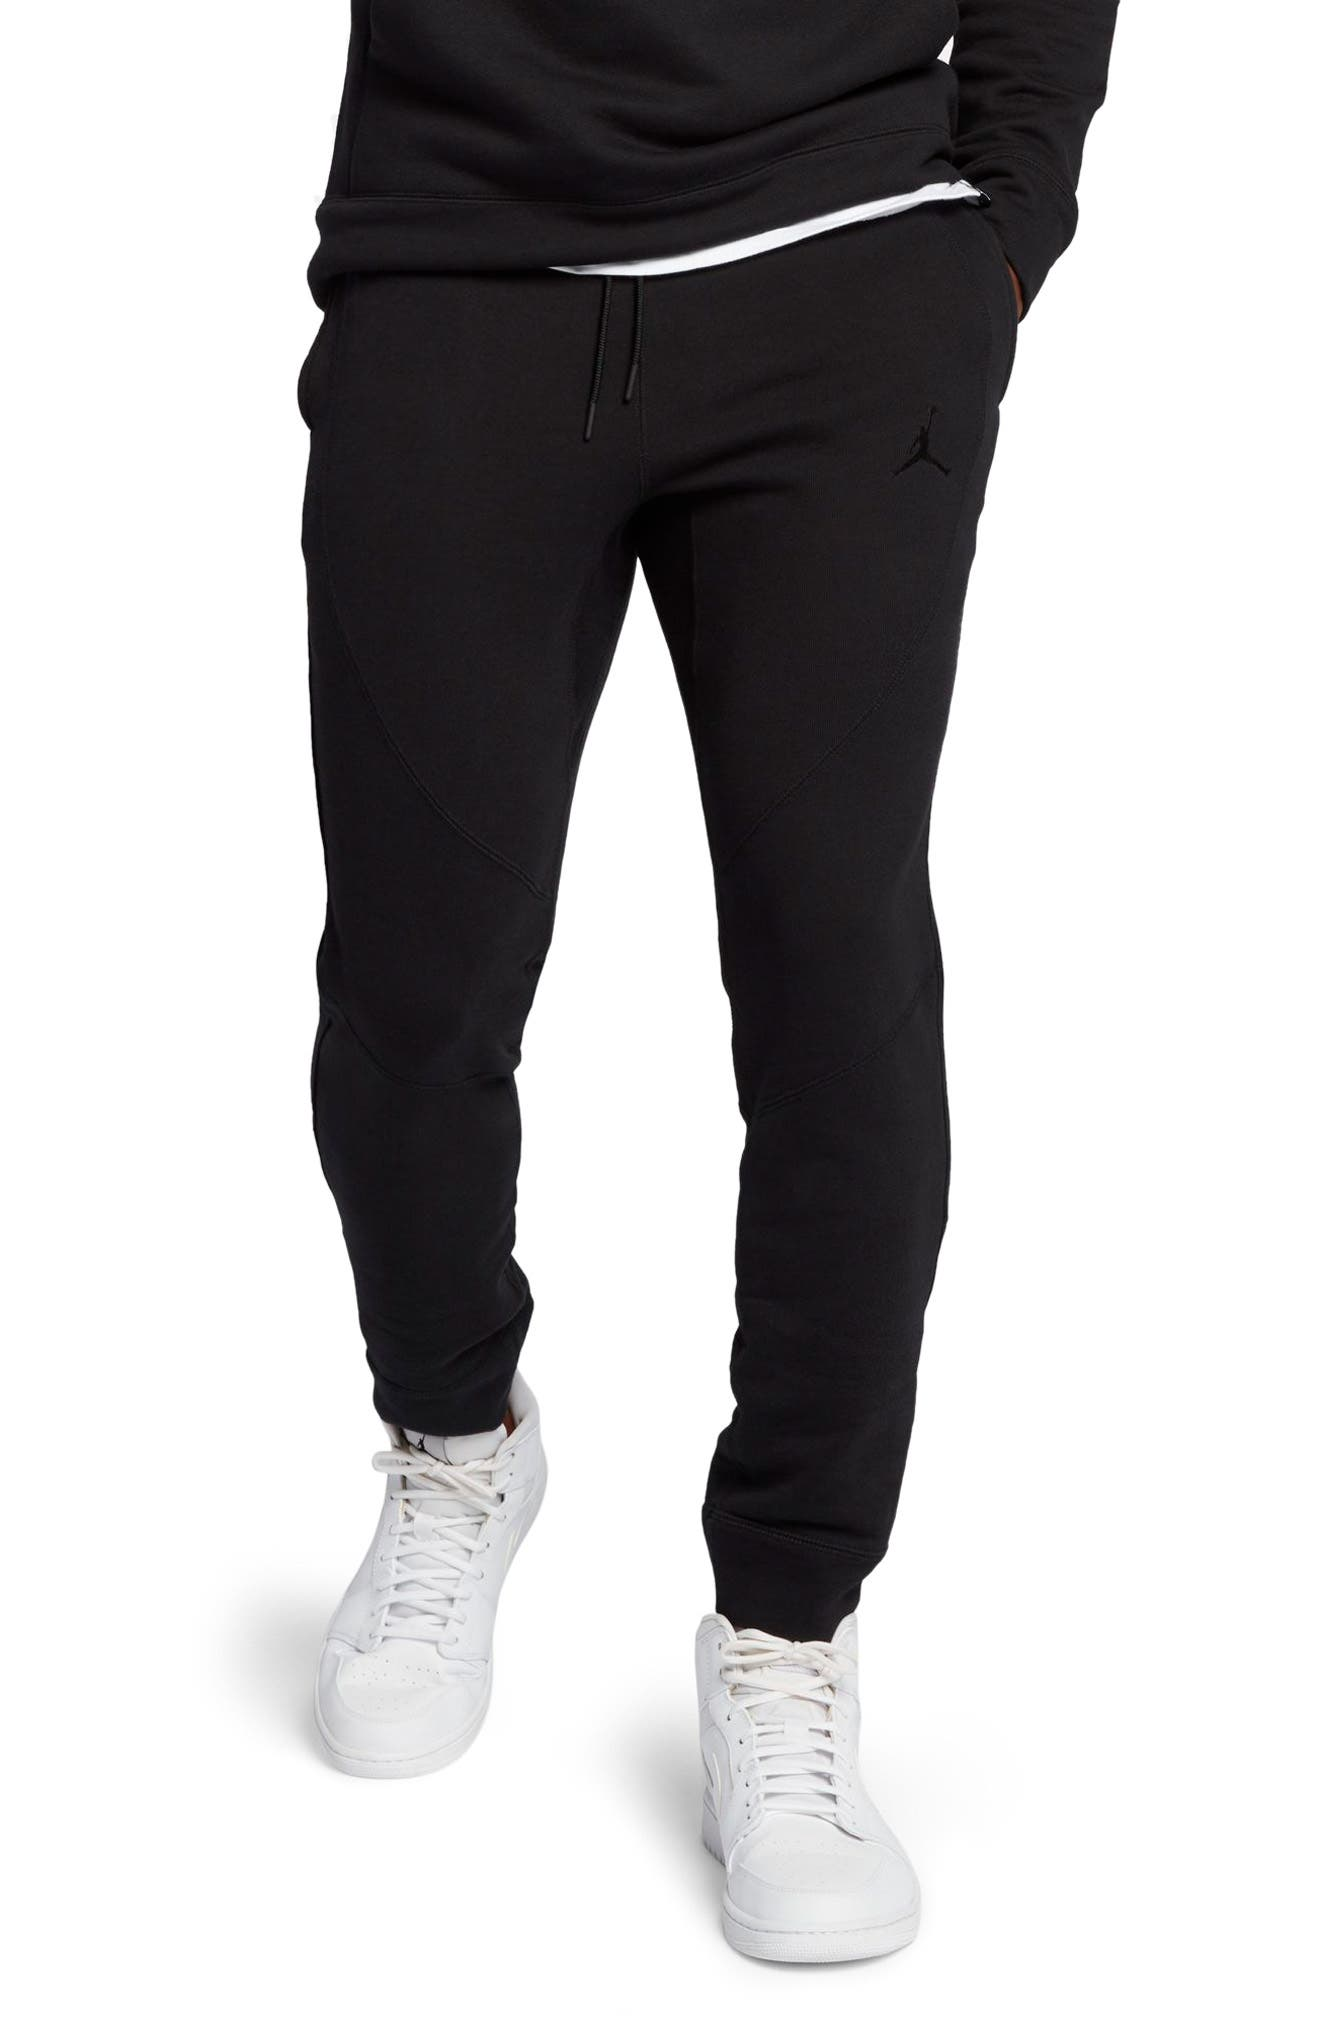 Wings Fleece Pants,                         Main,                         color, BLACK/ BLACK